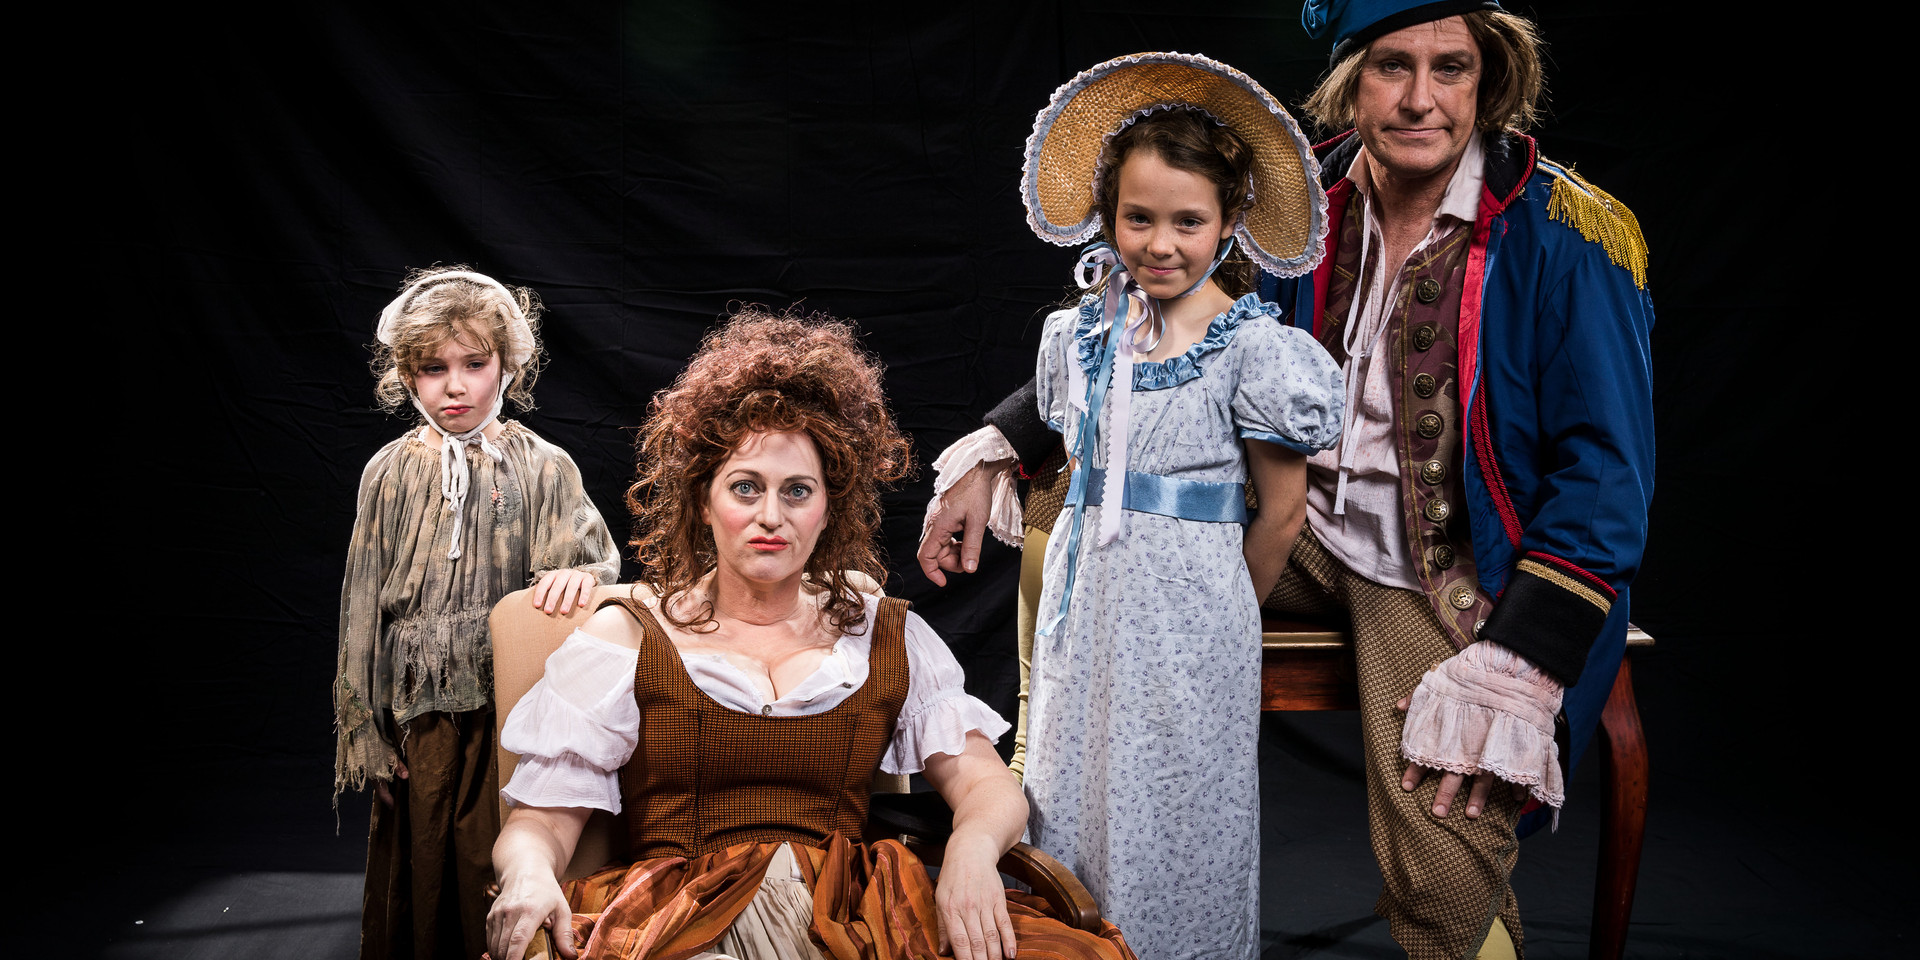 The Thénardiers (Monsieur and Madame Thénardier and Eponine Thénardier) with Cosette